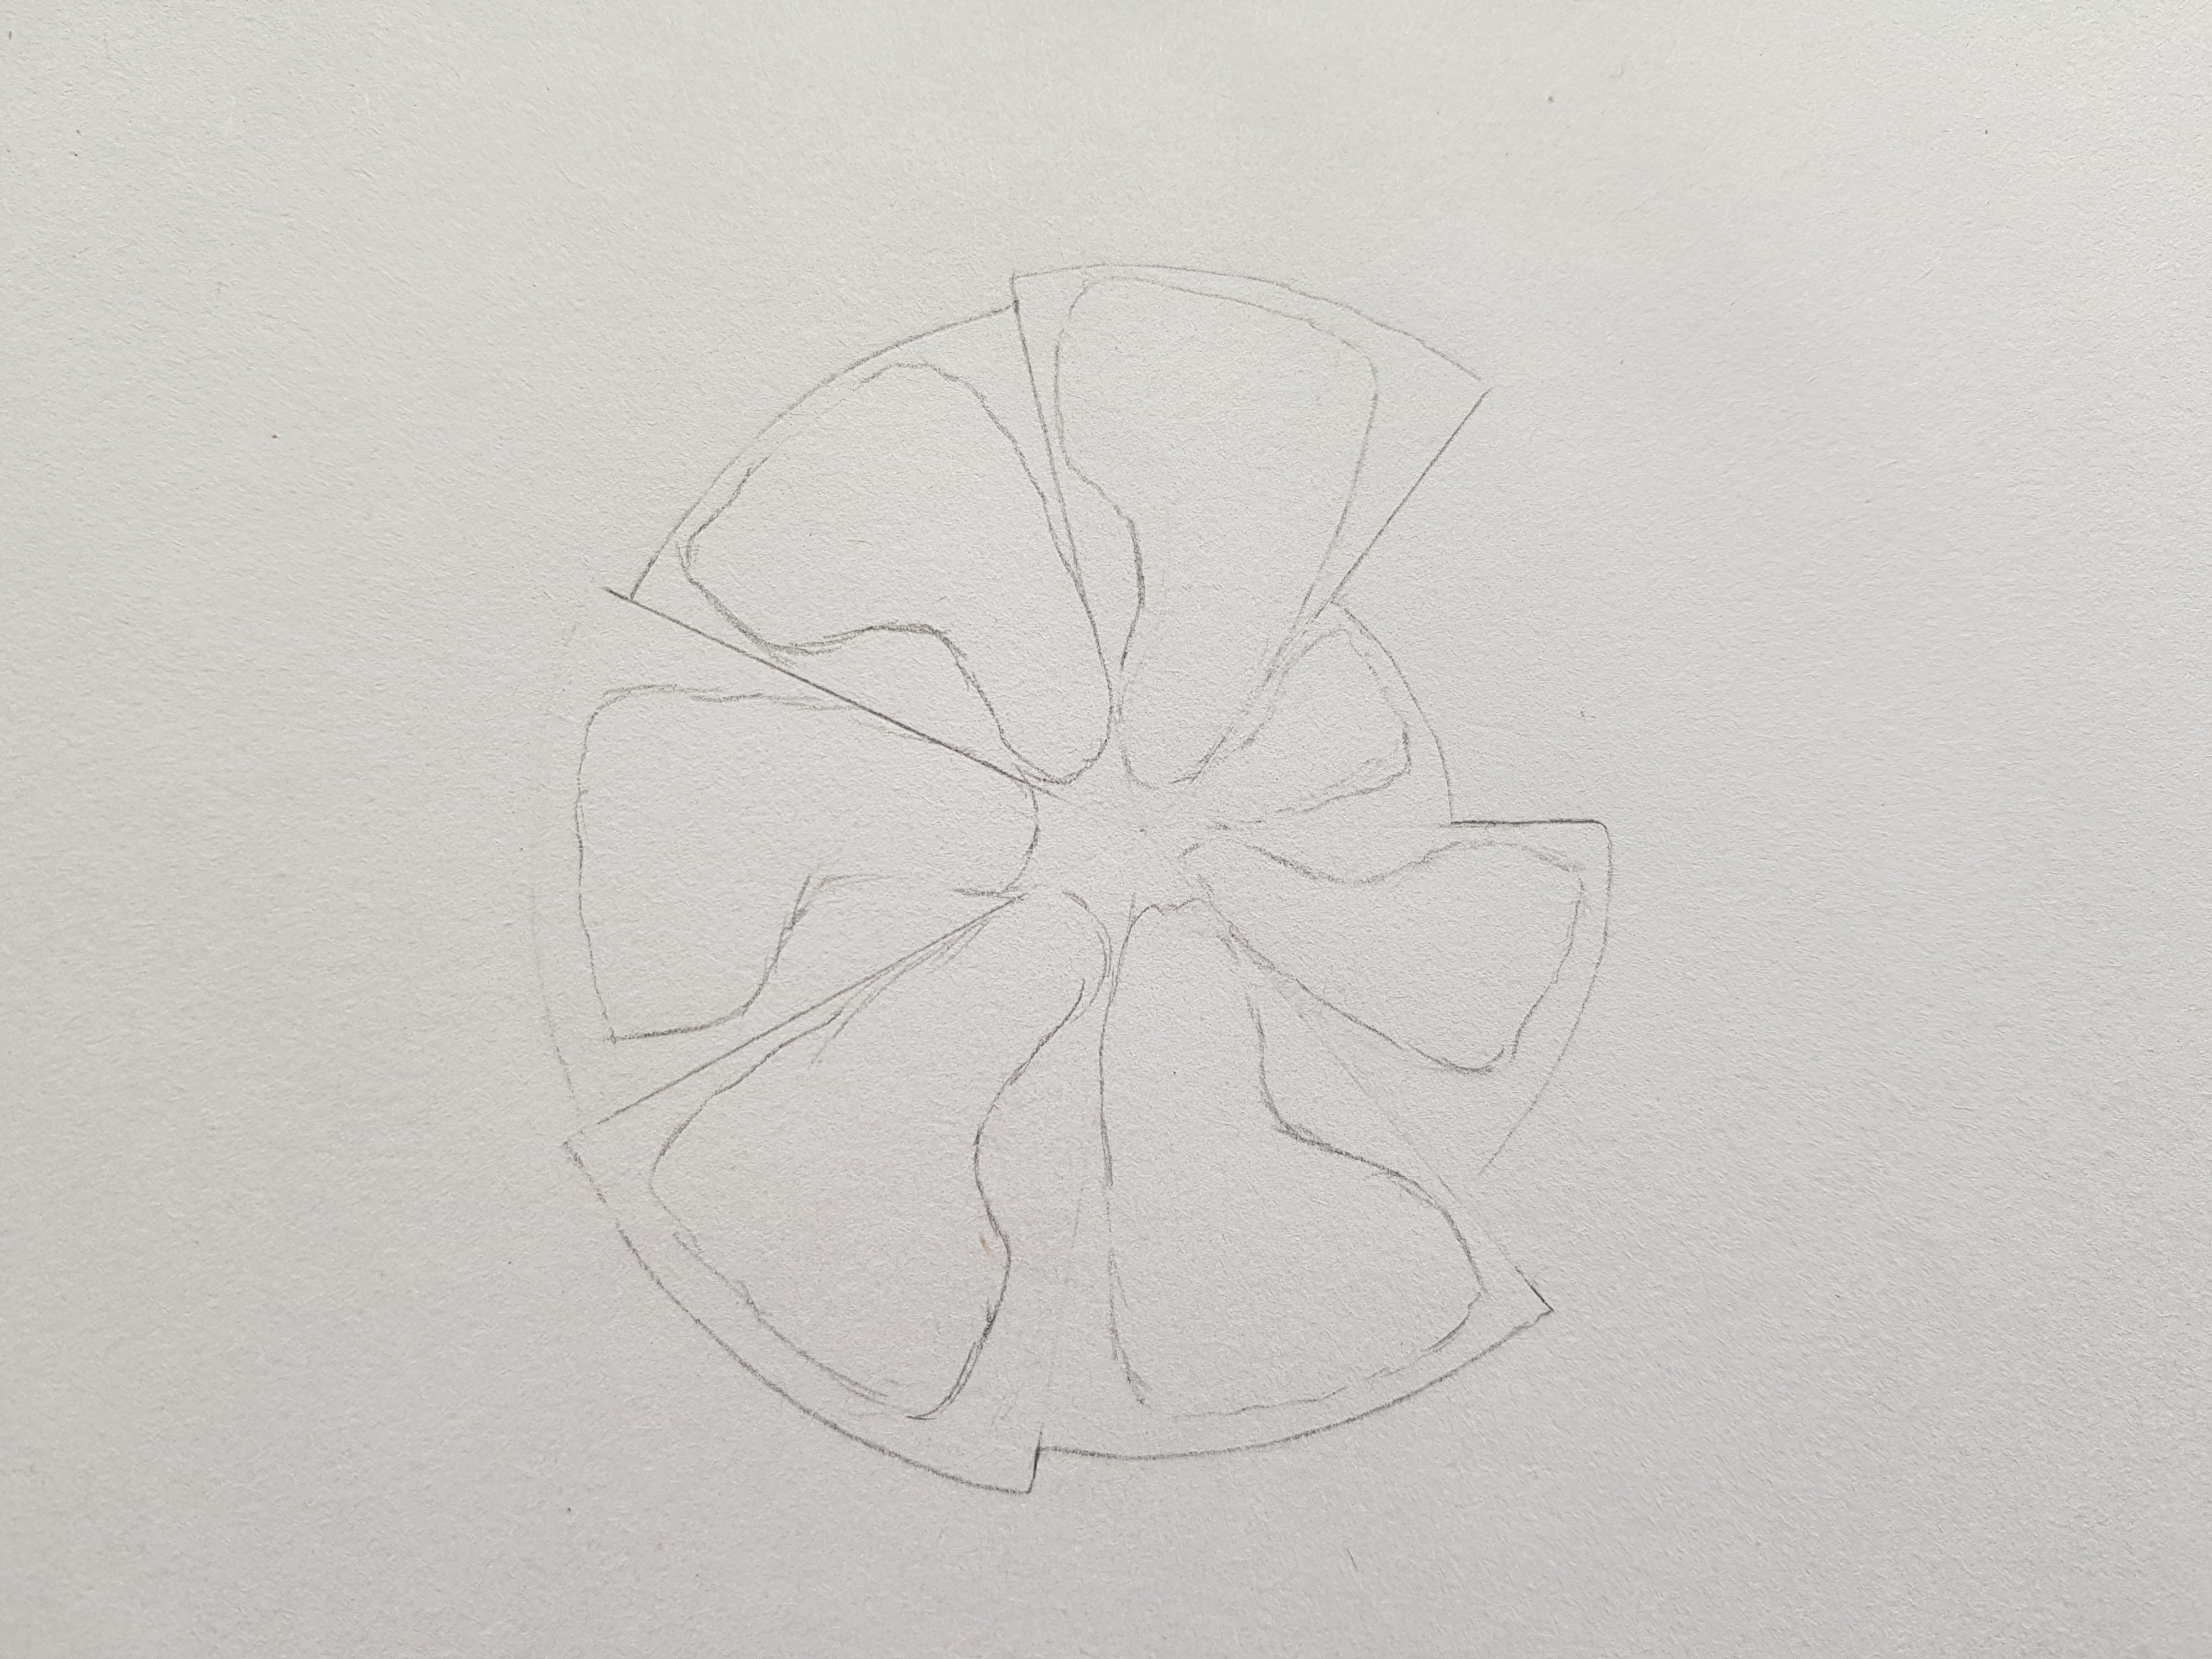 A sketch of a rose/flower design made of different-sized feet